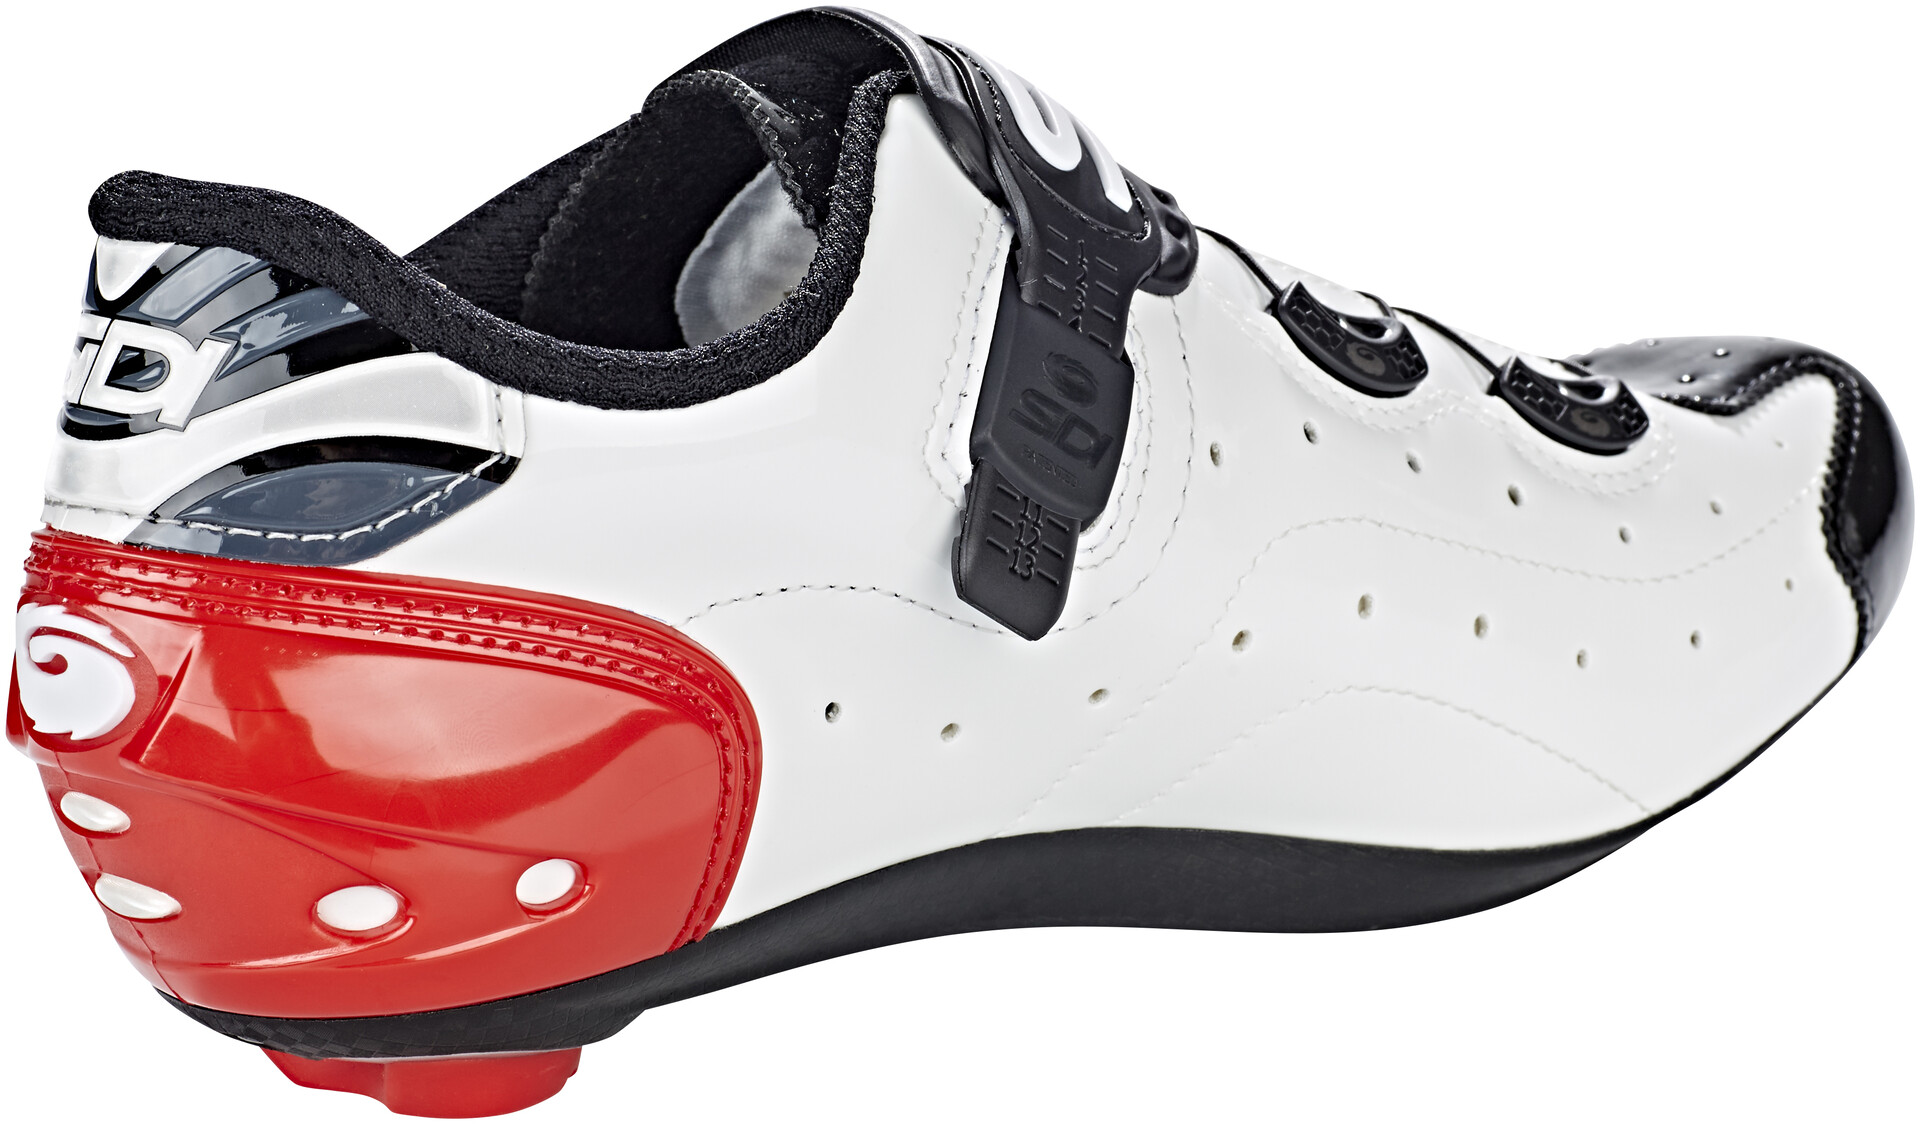 Shoes Sidi Whiteblackred Kaos Sidi Kaos Herren 9WD2IEH